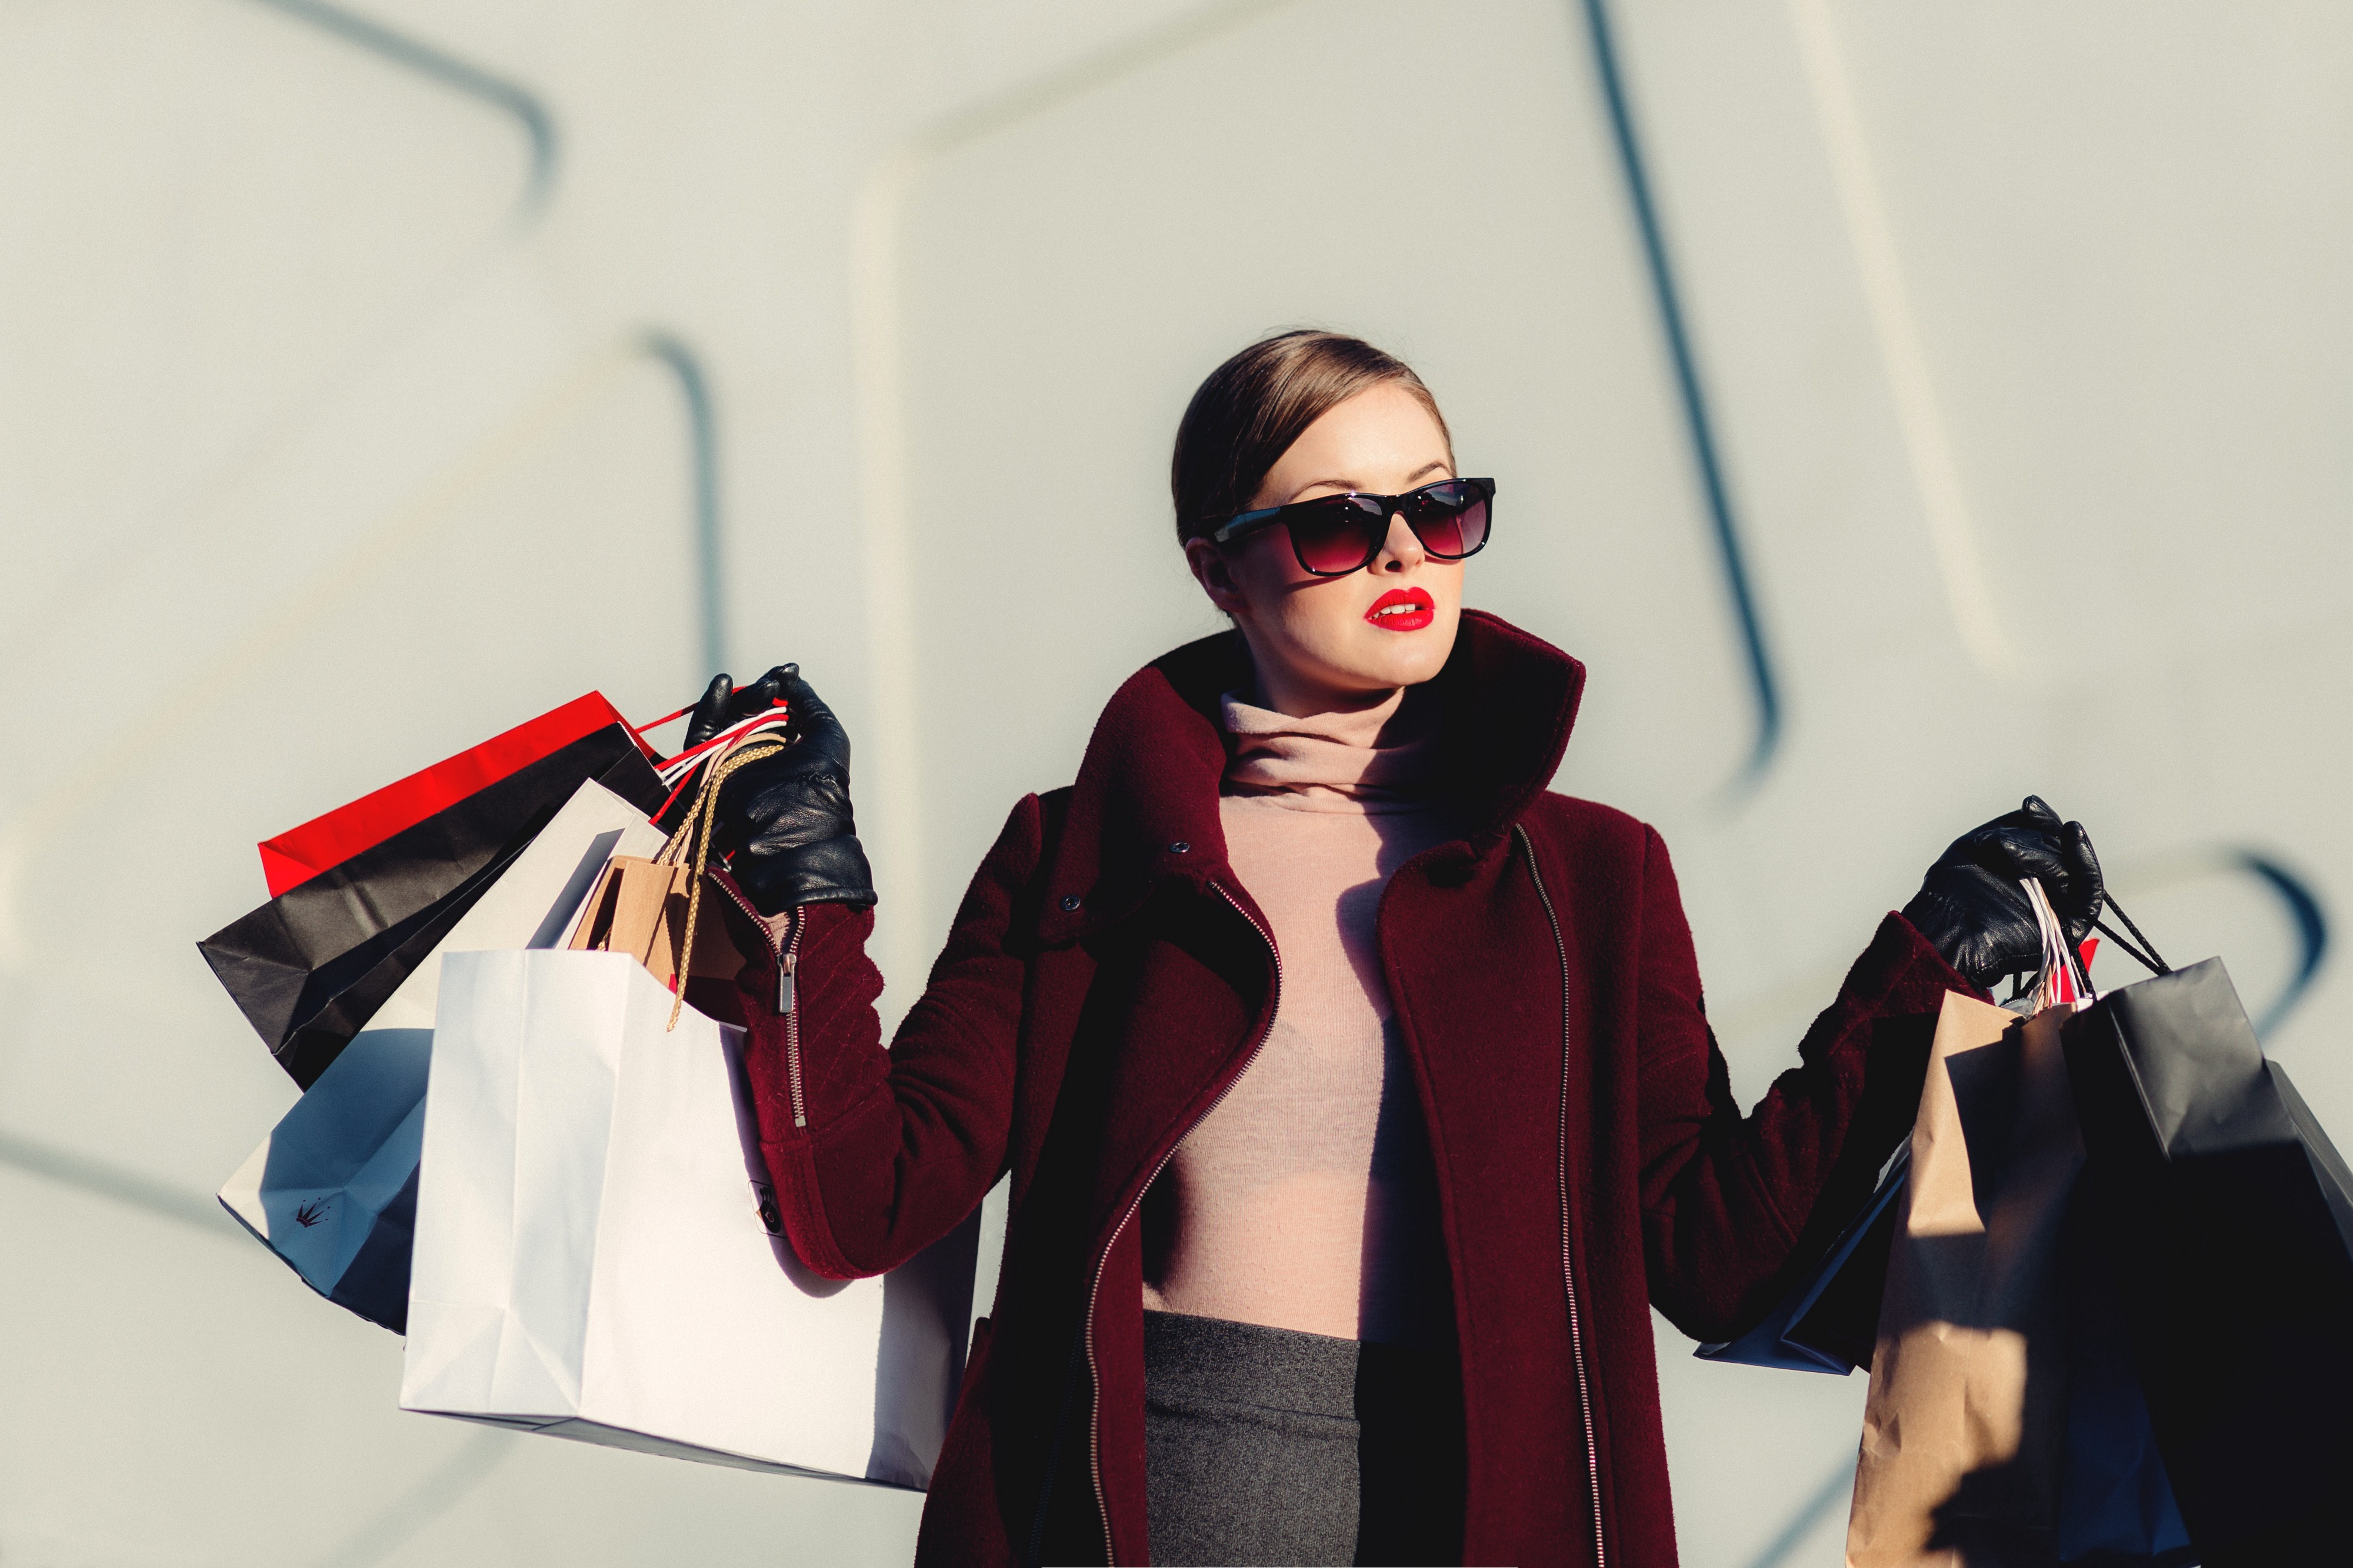 Quit your fashion addiction, simplify your wardrobe and stop